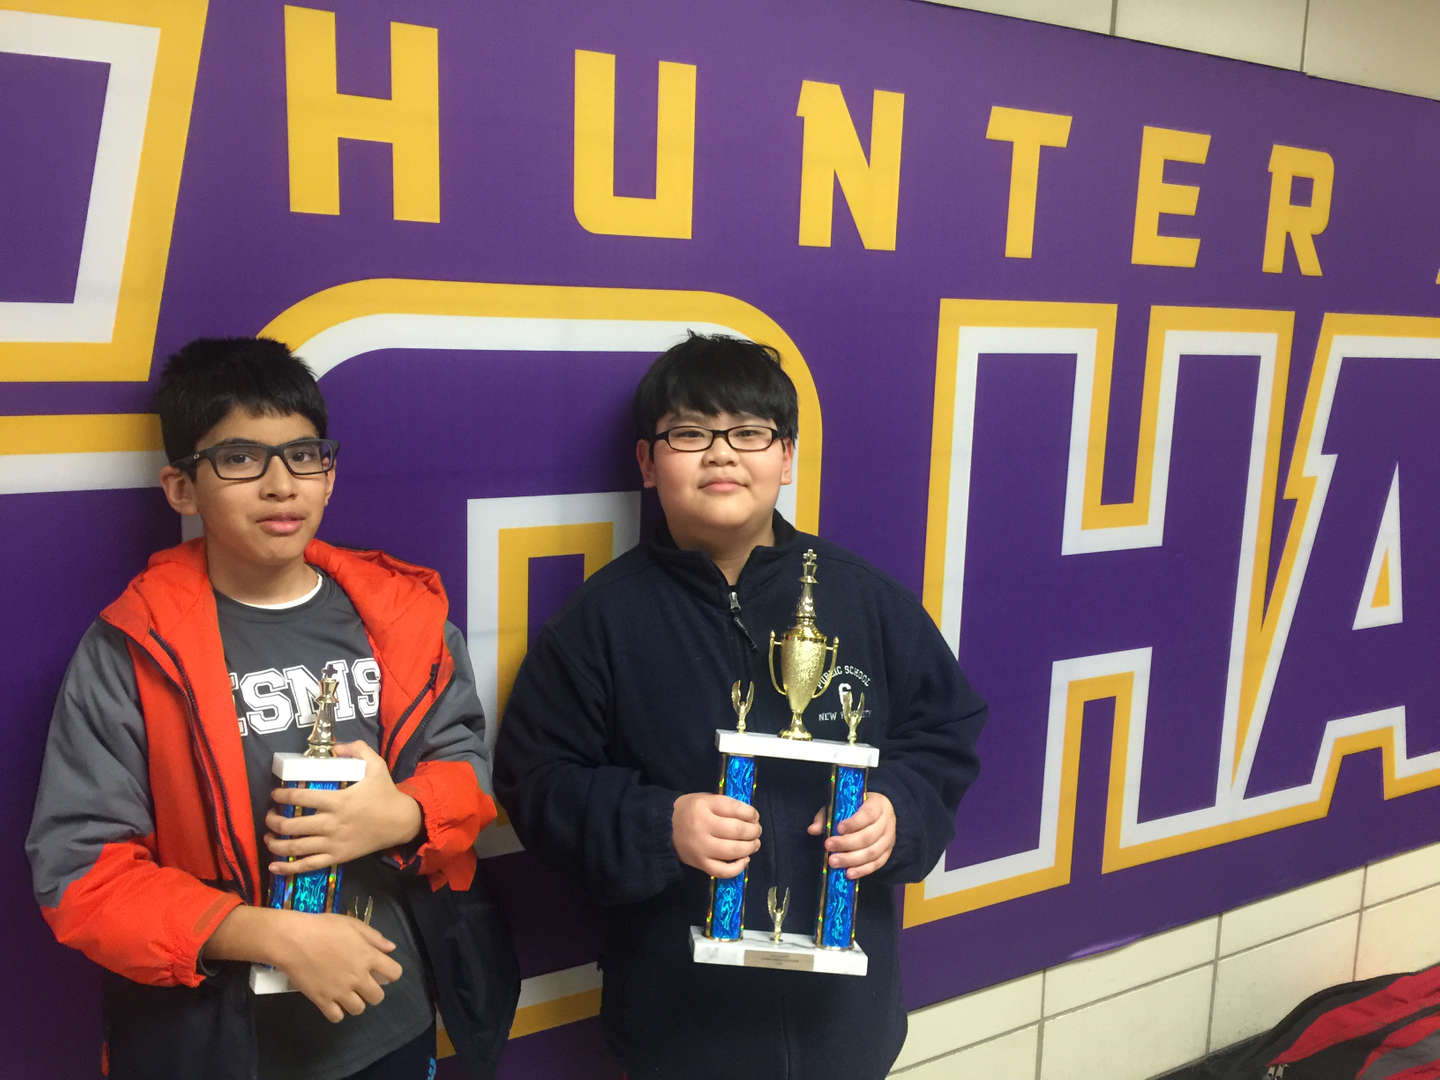 Photo - 2018 ESMS Chess Champs with trophies